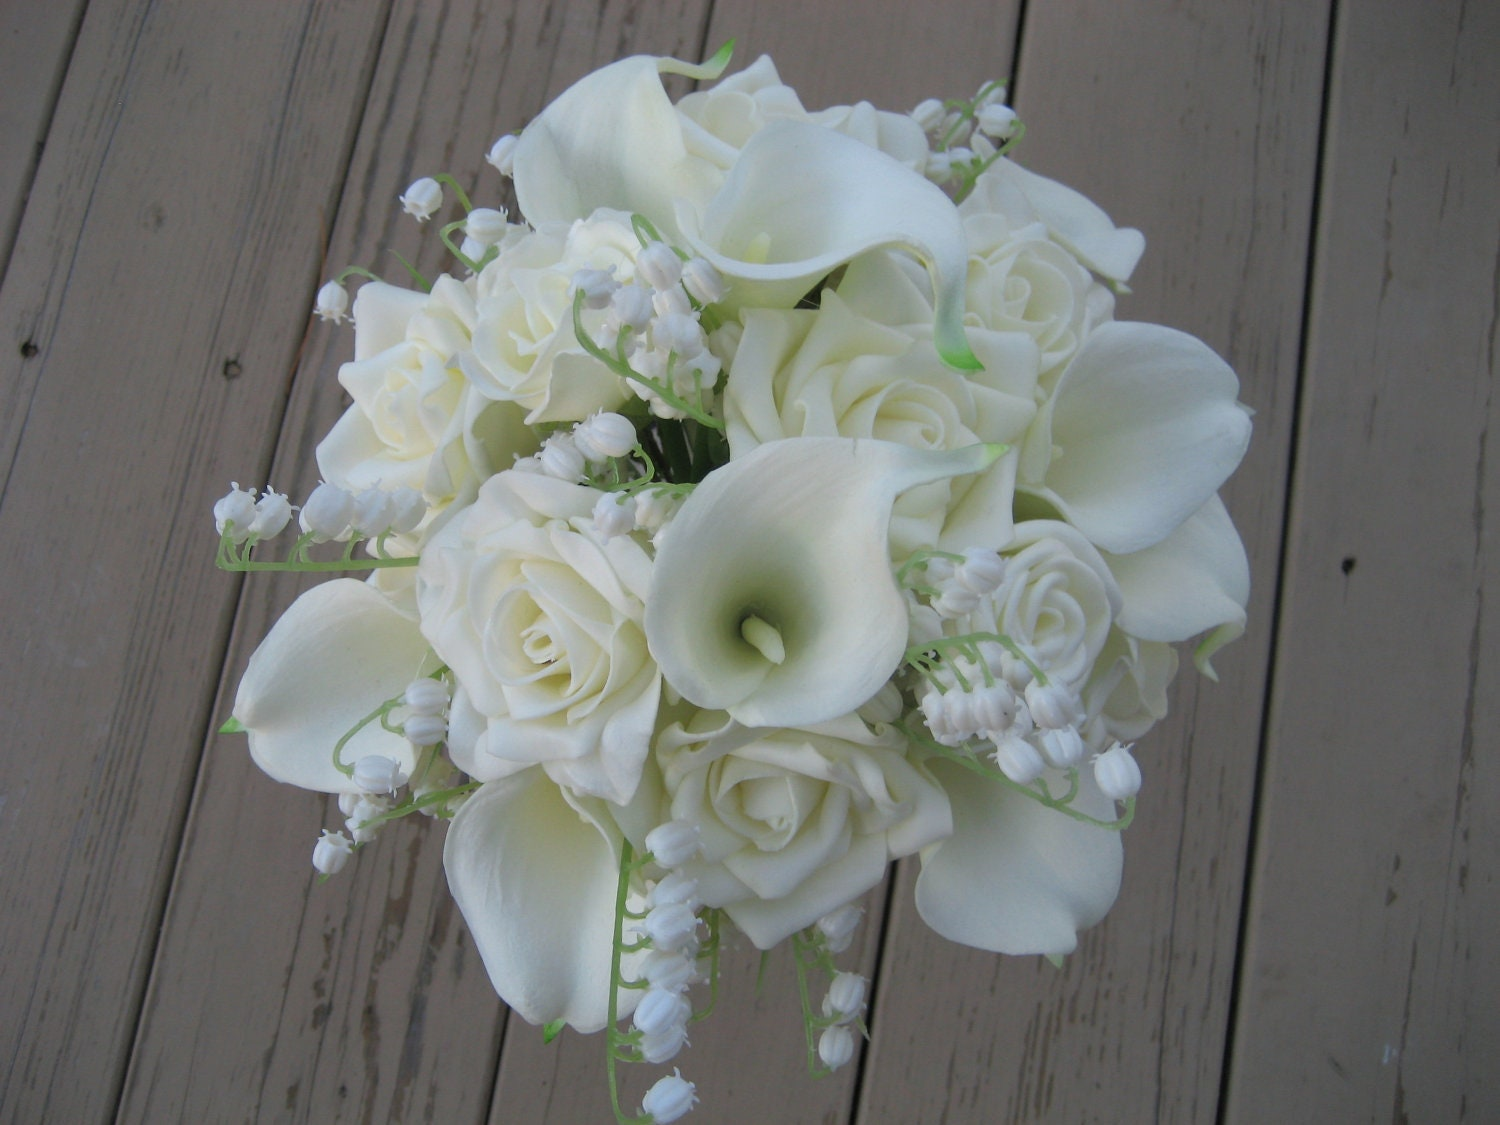 Wedding Flowers Roses And Lilies : Wedding bouquet all white flowers roses lily of the valley